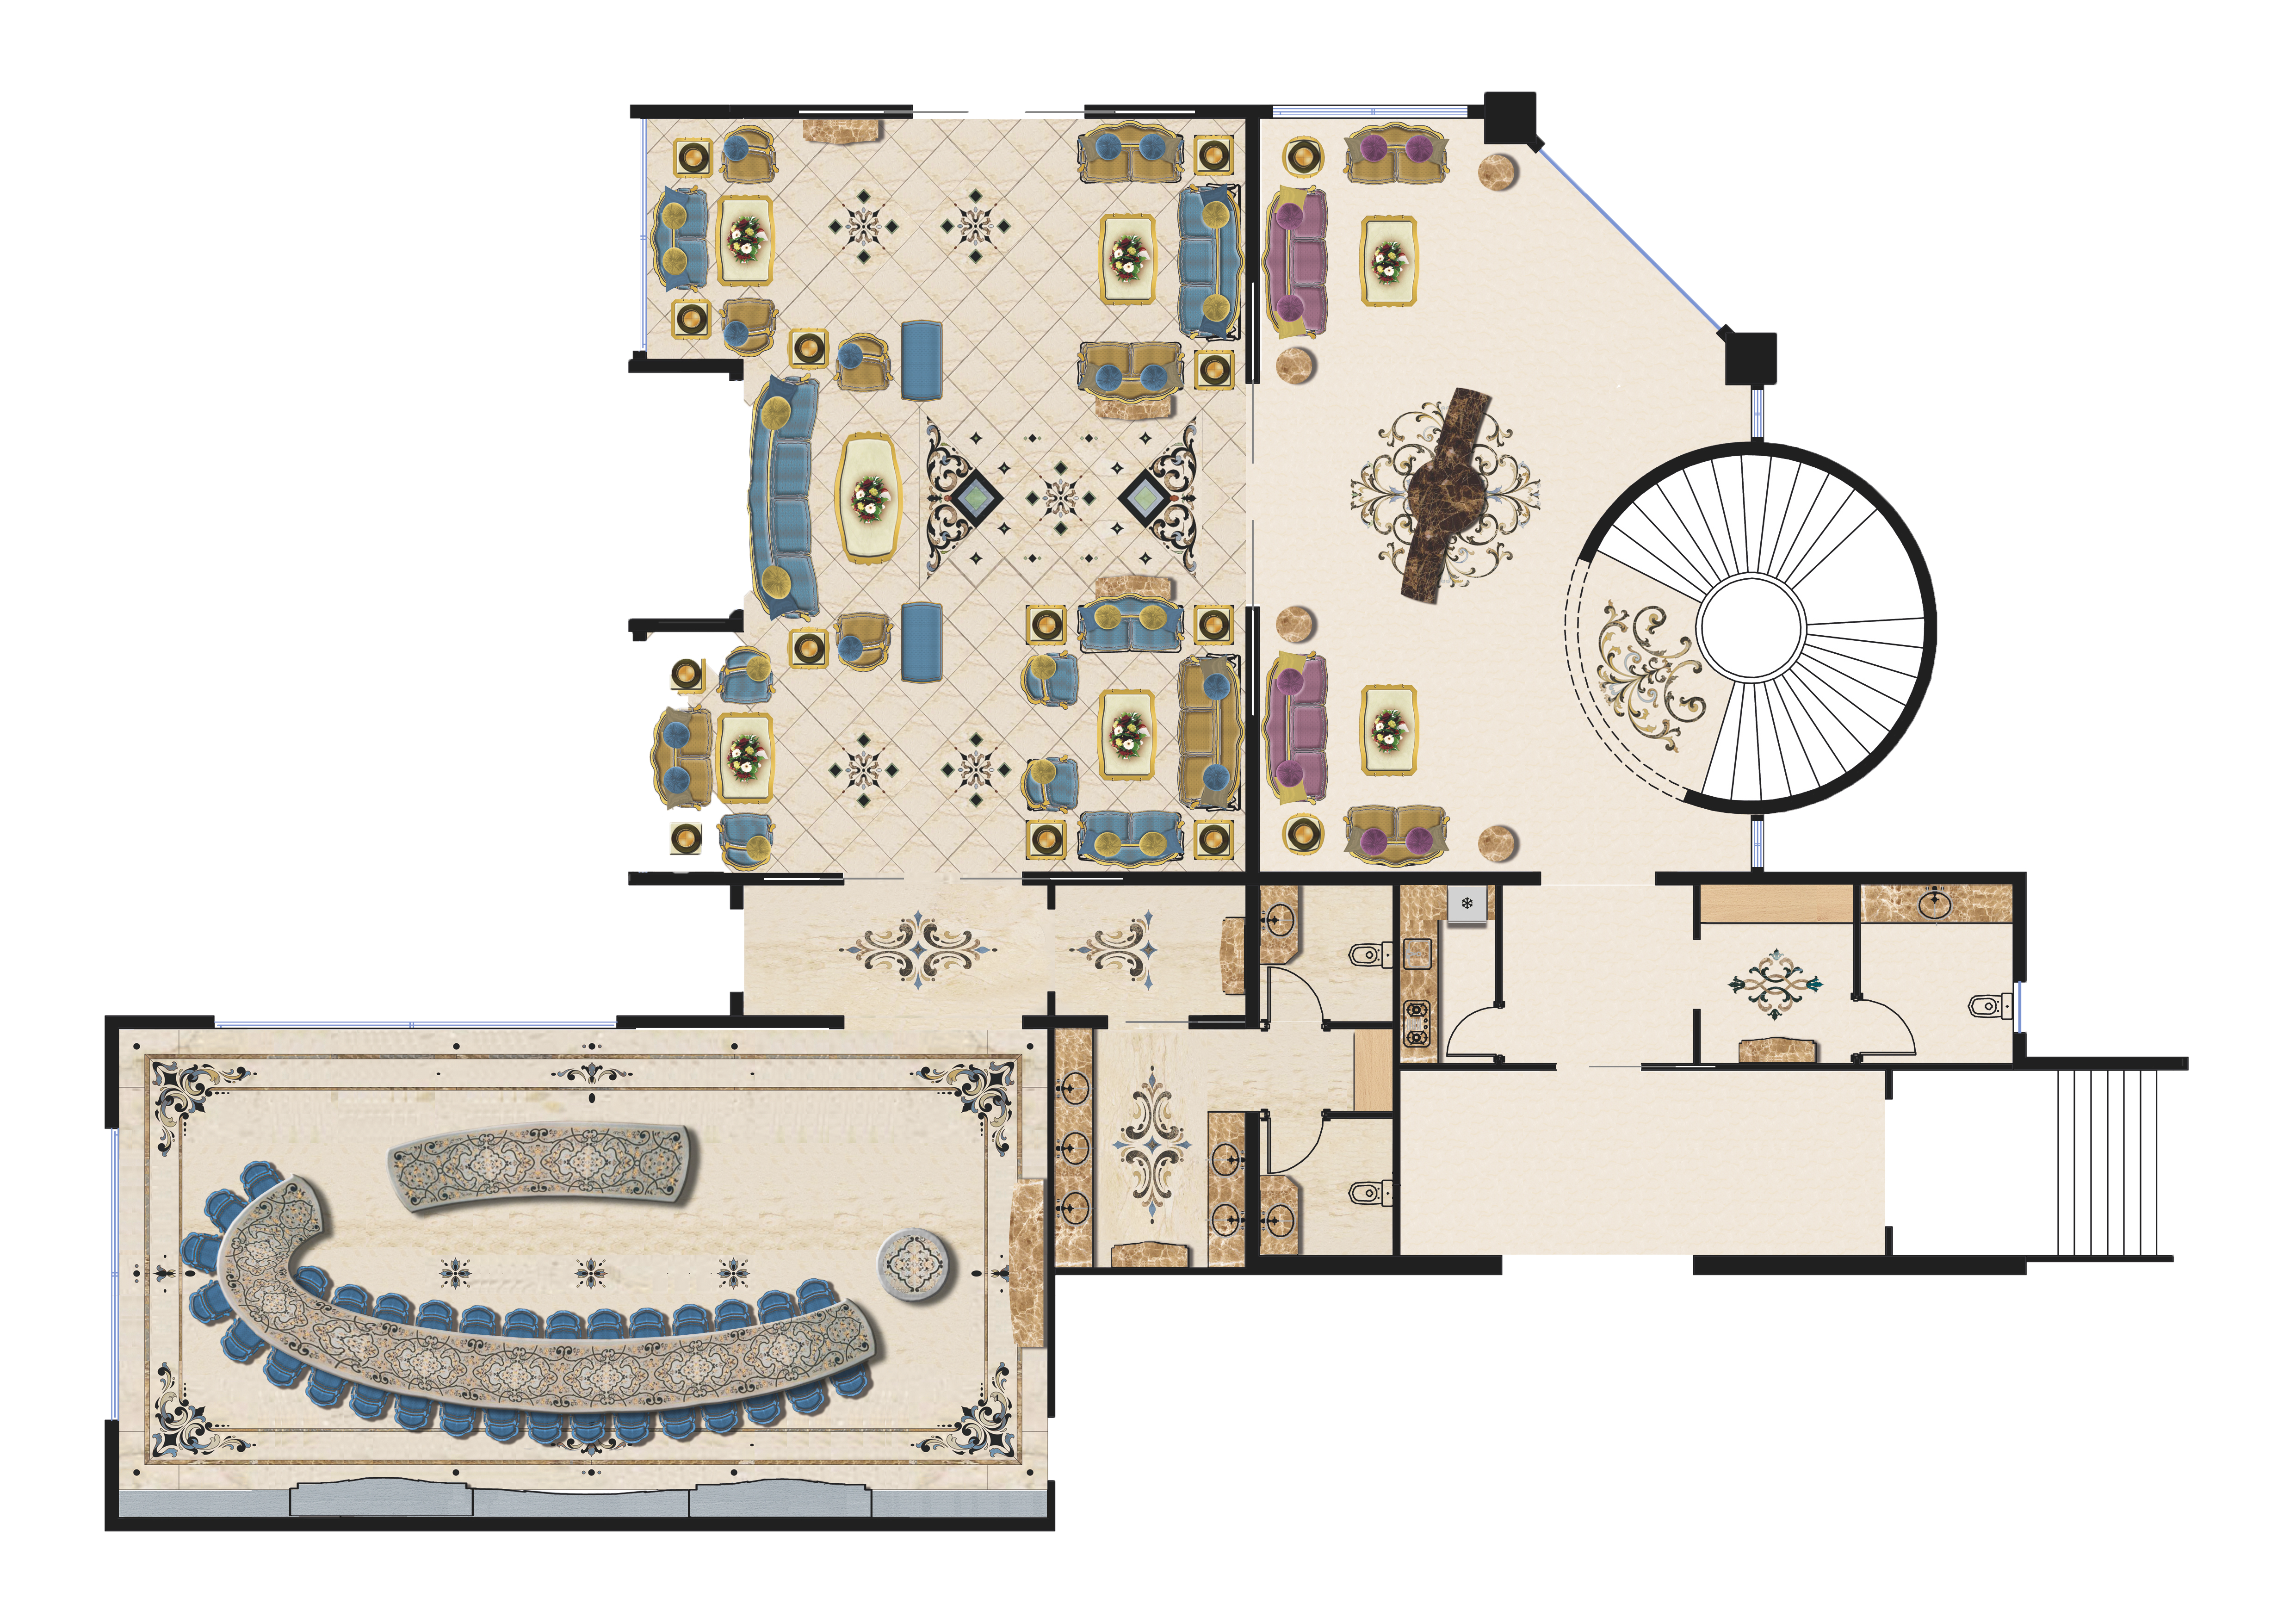 Floor plan furniture png. Palace feature interior consultancy